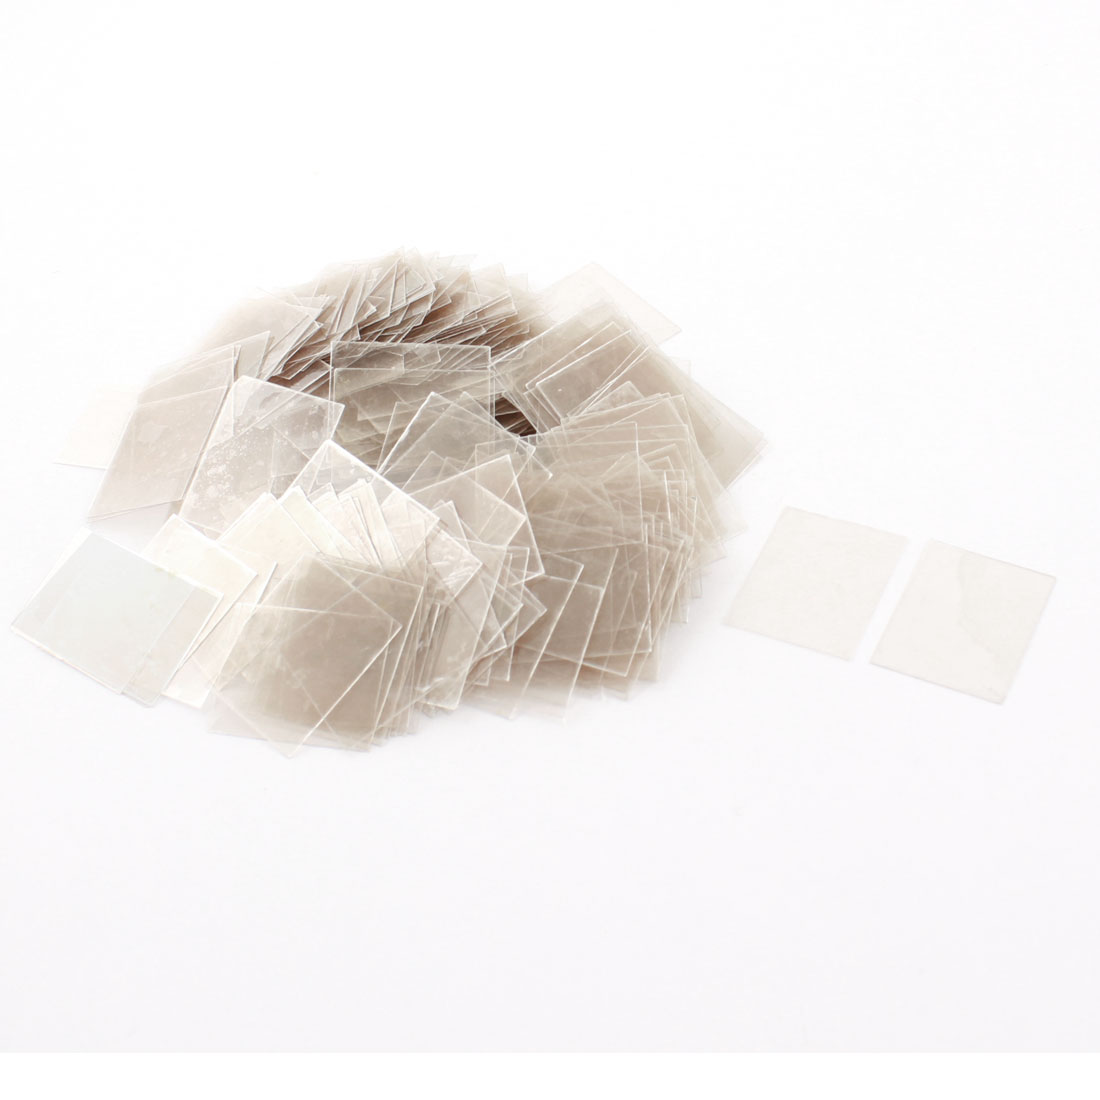 300Pcs 20mm x 25cm x 0.09mm Mica Paper Sheets Insulator